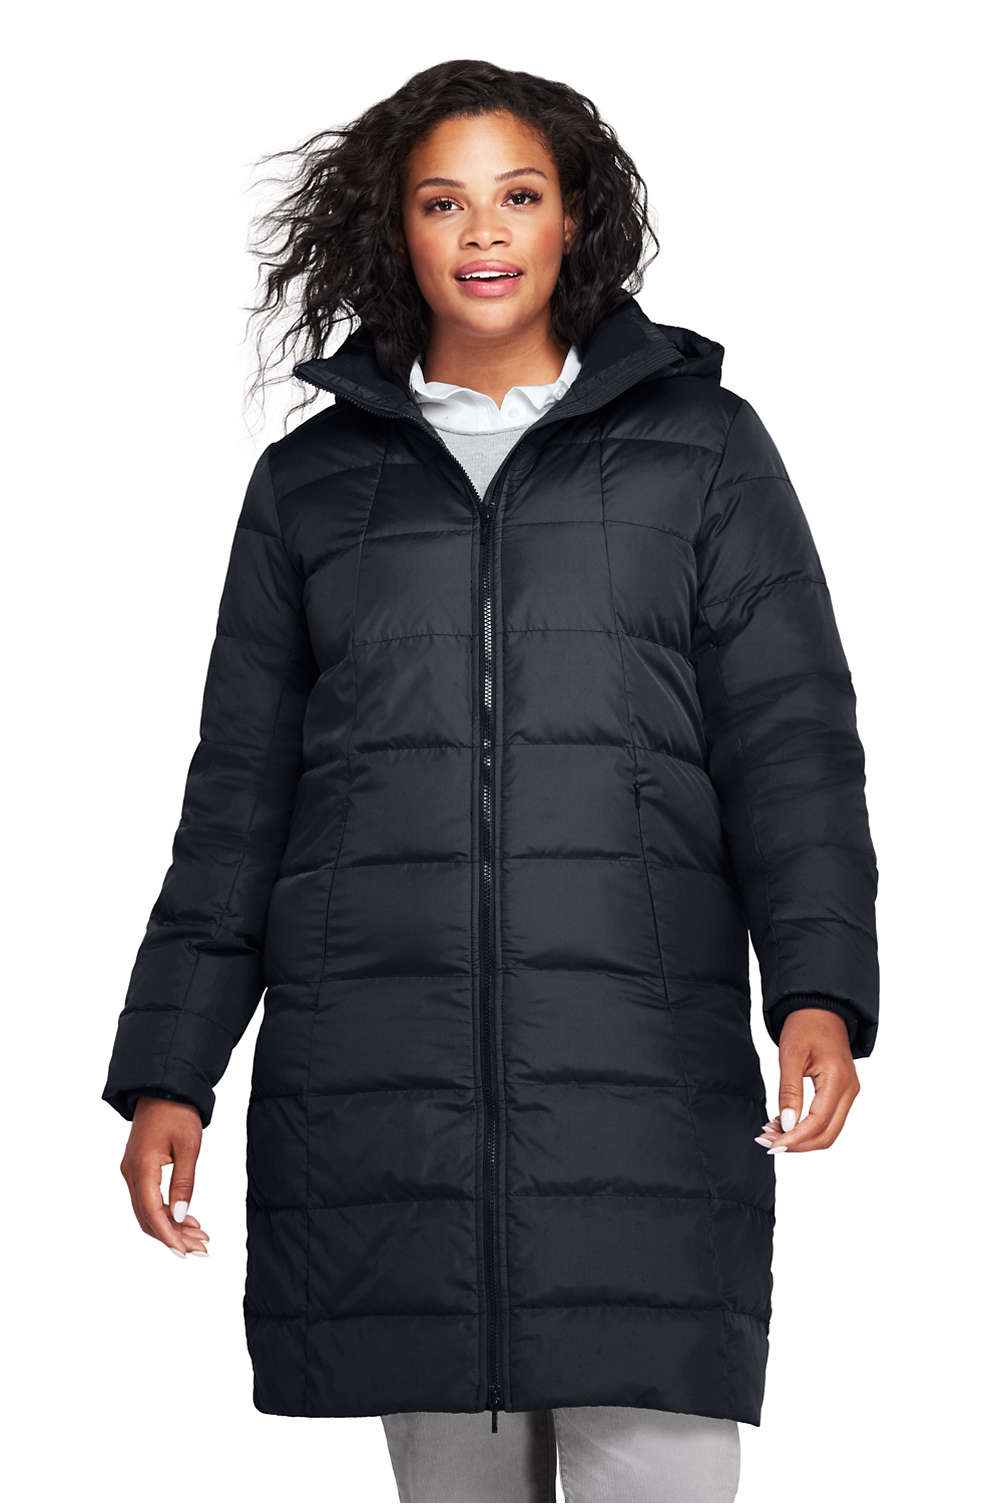 462f6cd67 Women's Plus Size Winter Long Down Coat from Lands' End